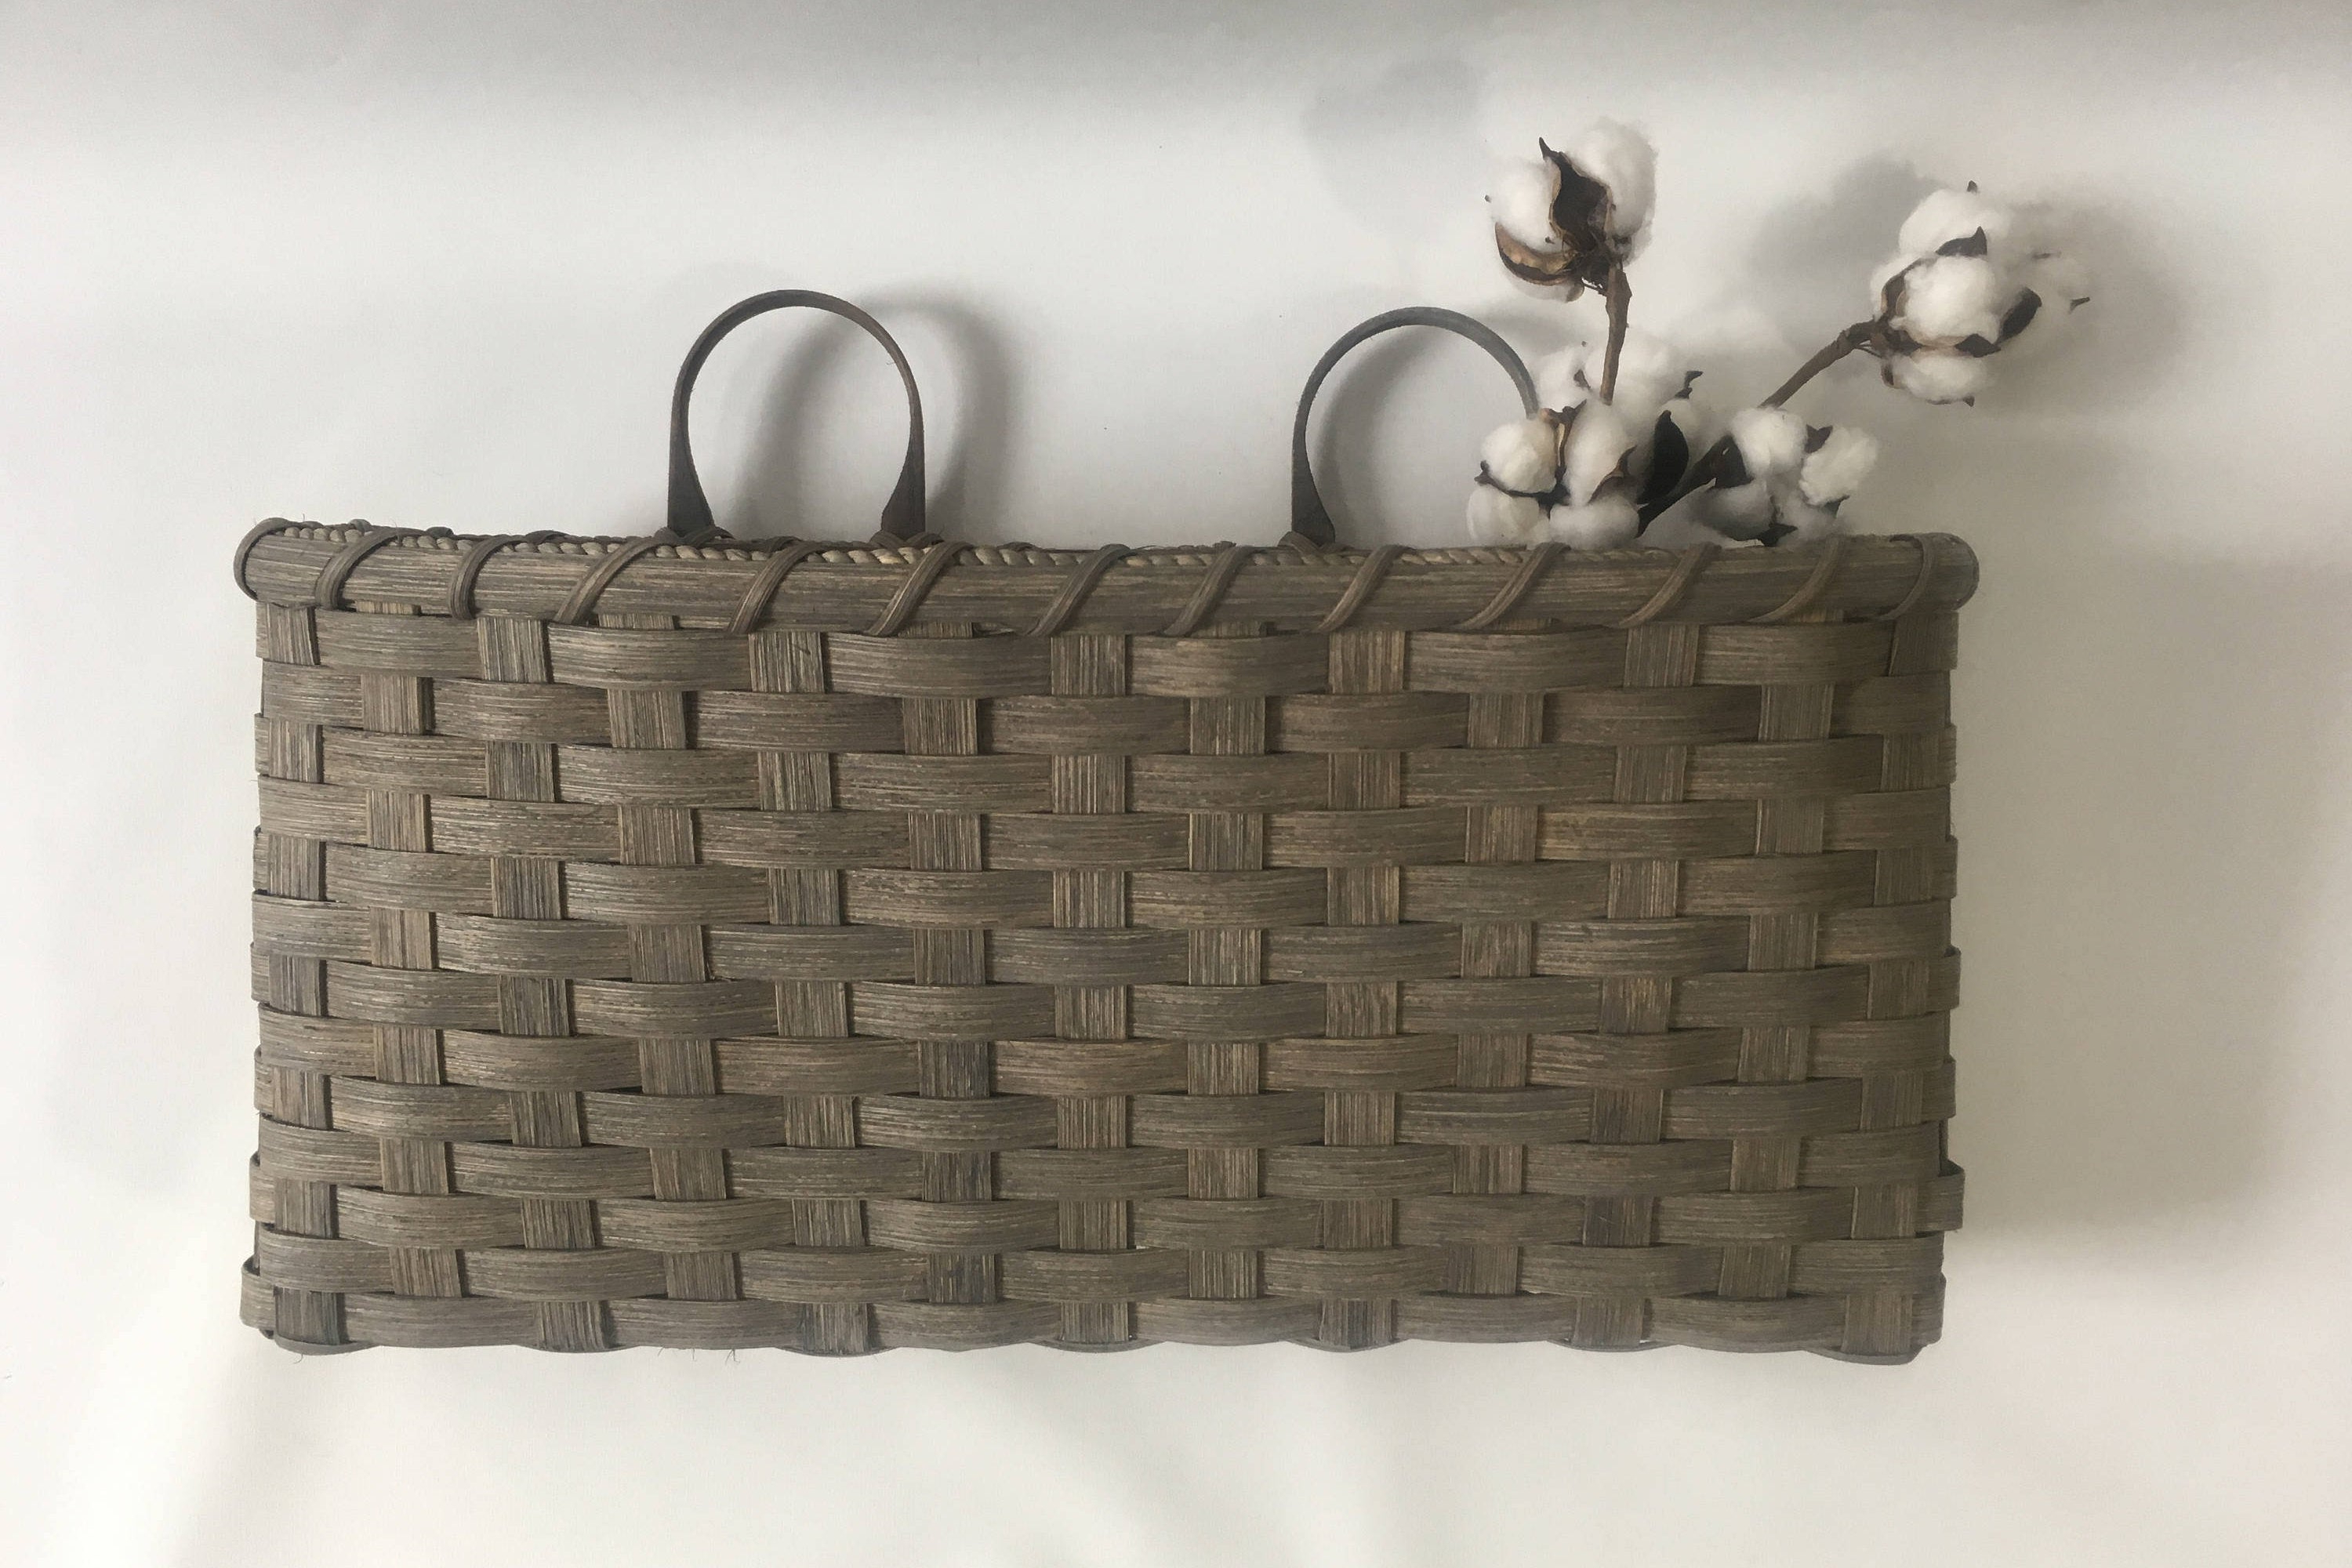 4 Piece Handwoven Wheel Wall Decor Sets With Most Recent Large Wall Basket Wall Decor Handwoven Basket (View 10 of 20)